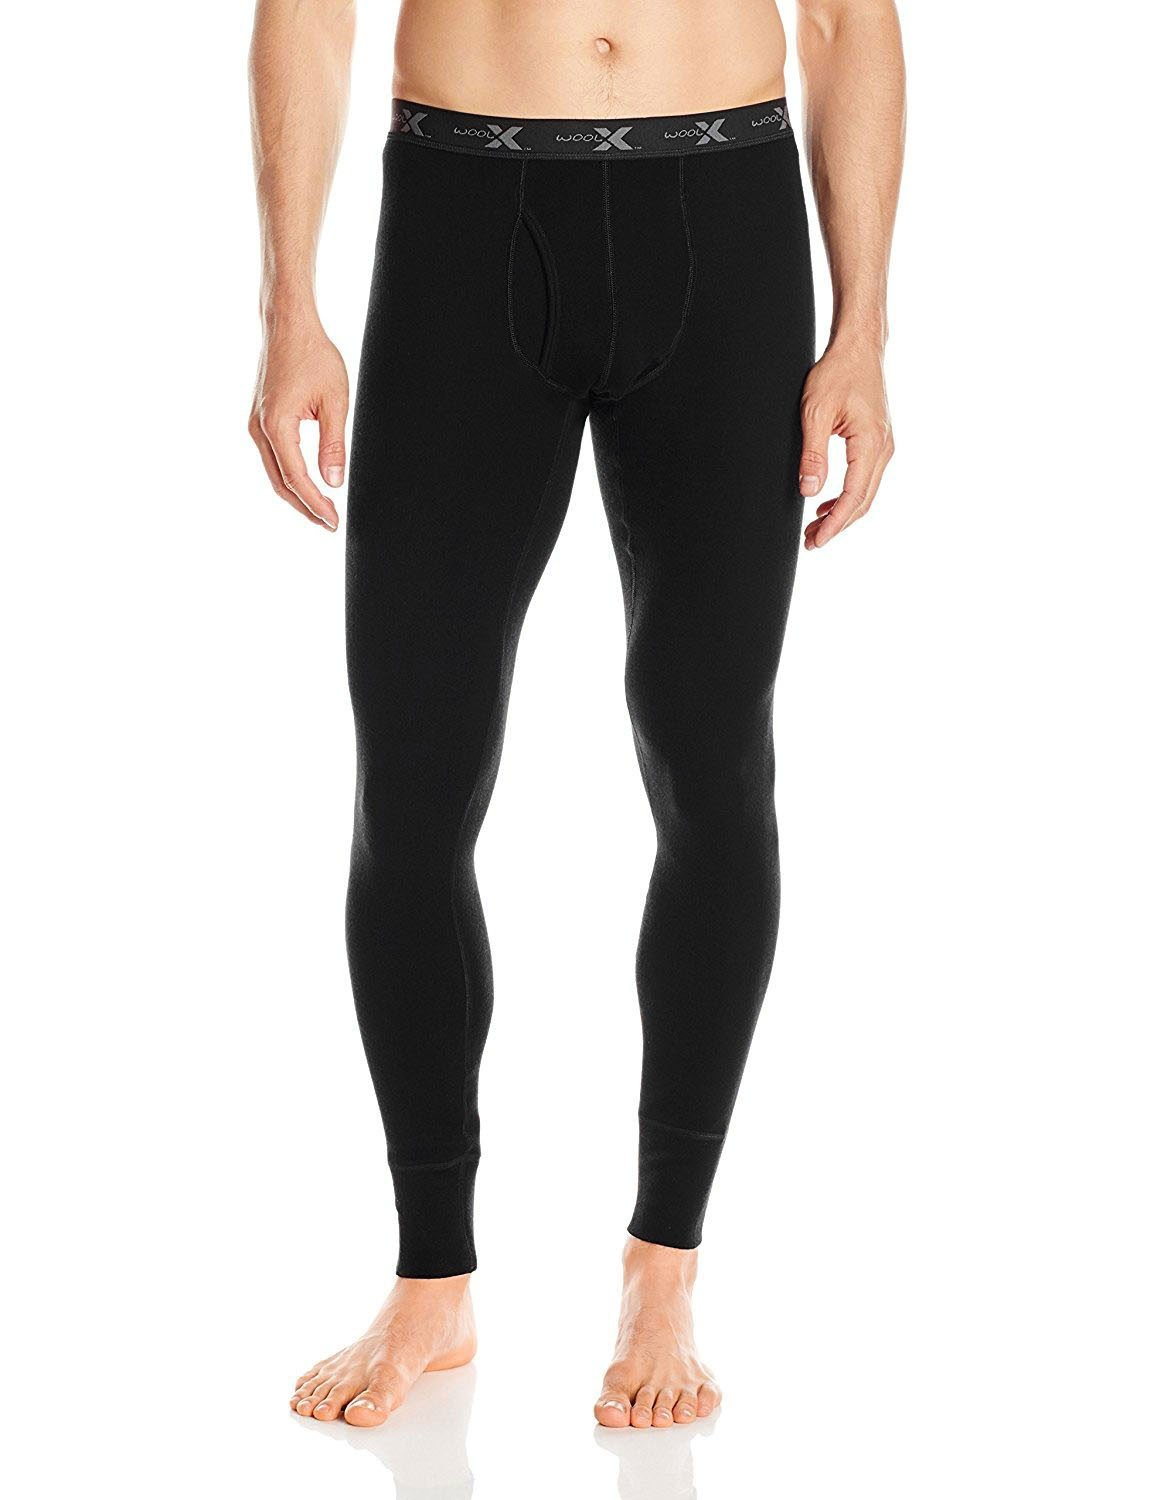 Woolx Men's Merino Wool Base Layer Pants - Midweight Wool Base Layer